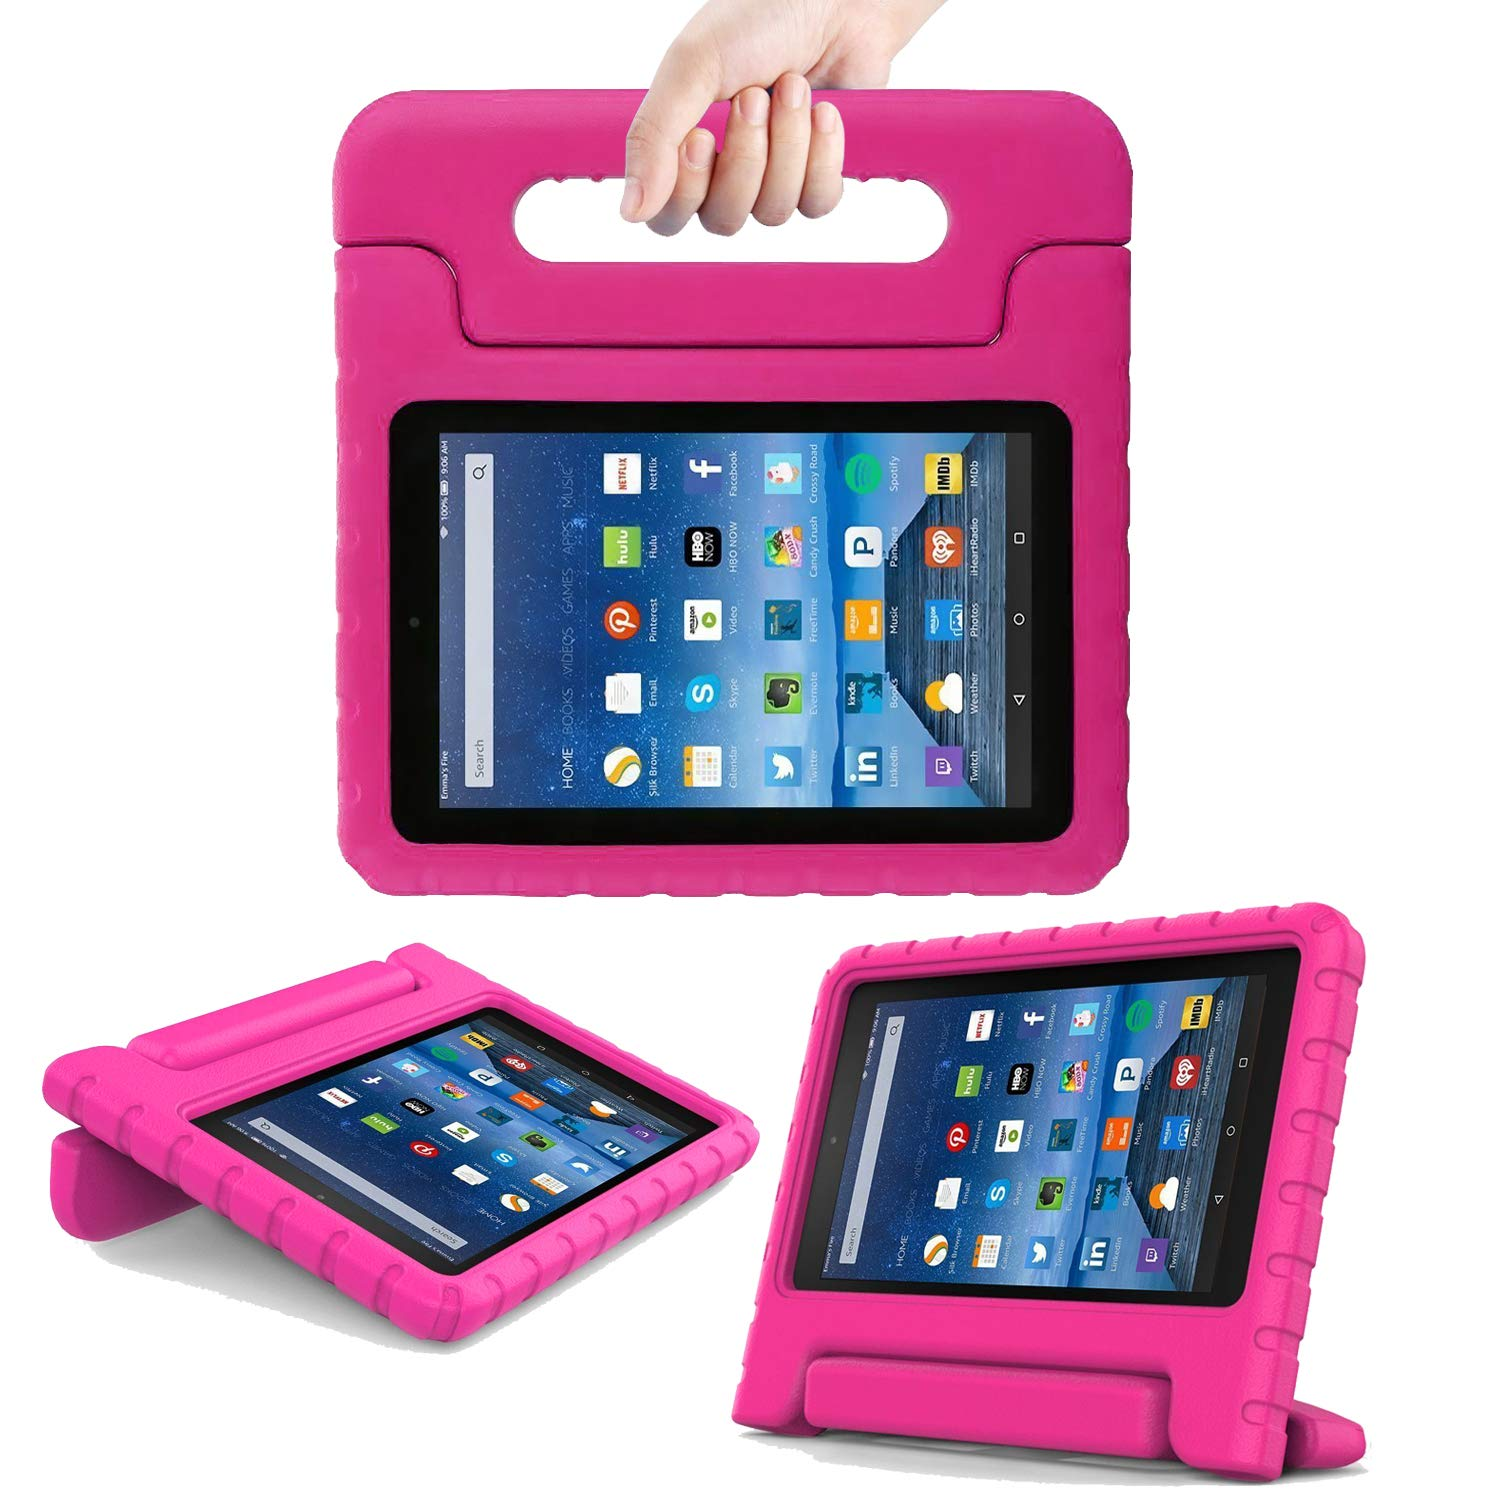 TIRIN All New Fire 7 2019/2017 Case - Light Weight Shock Proof Handle Kid-Proof Cover Kids Case for All New Fire 7 Tablet (9th/7th Generation, 2019/2017 Release), Rose